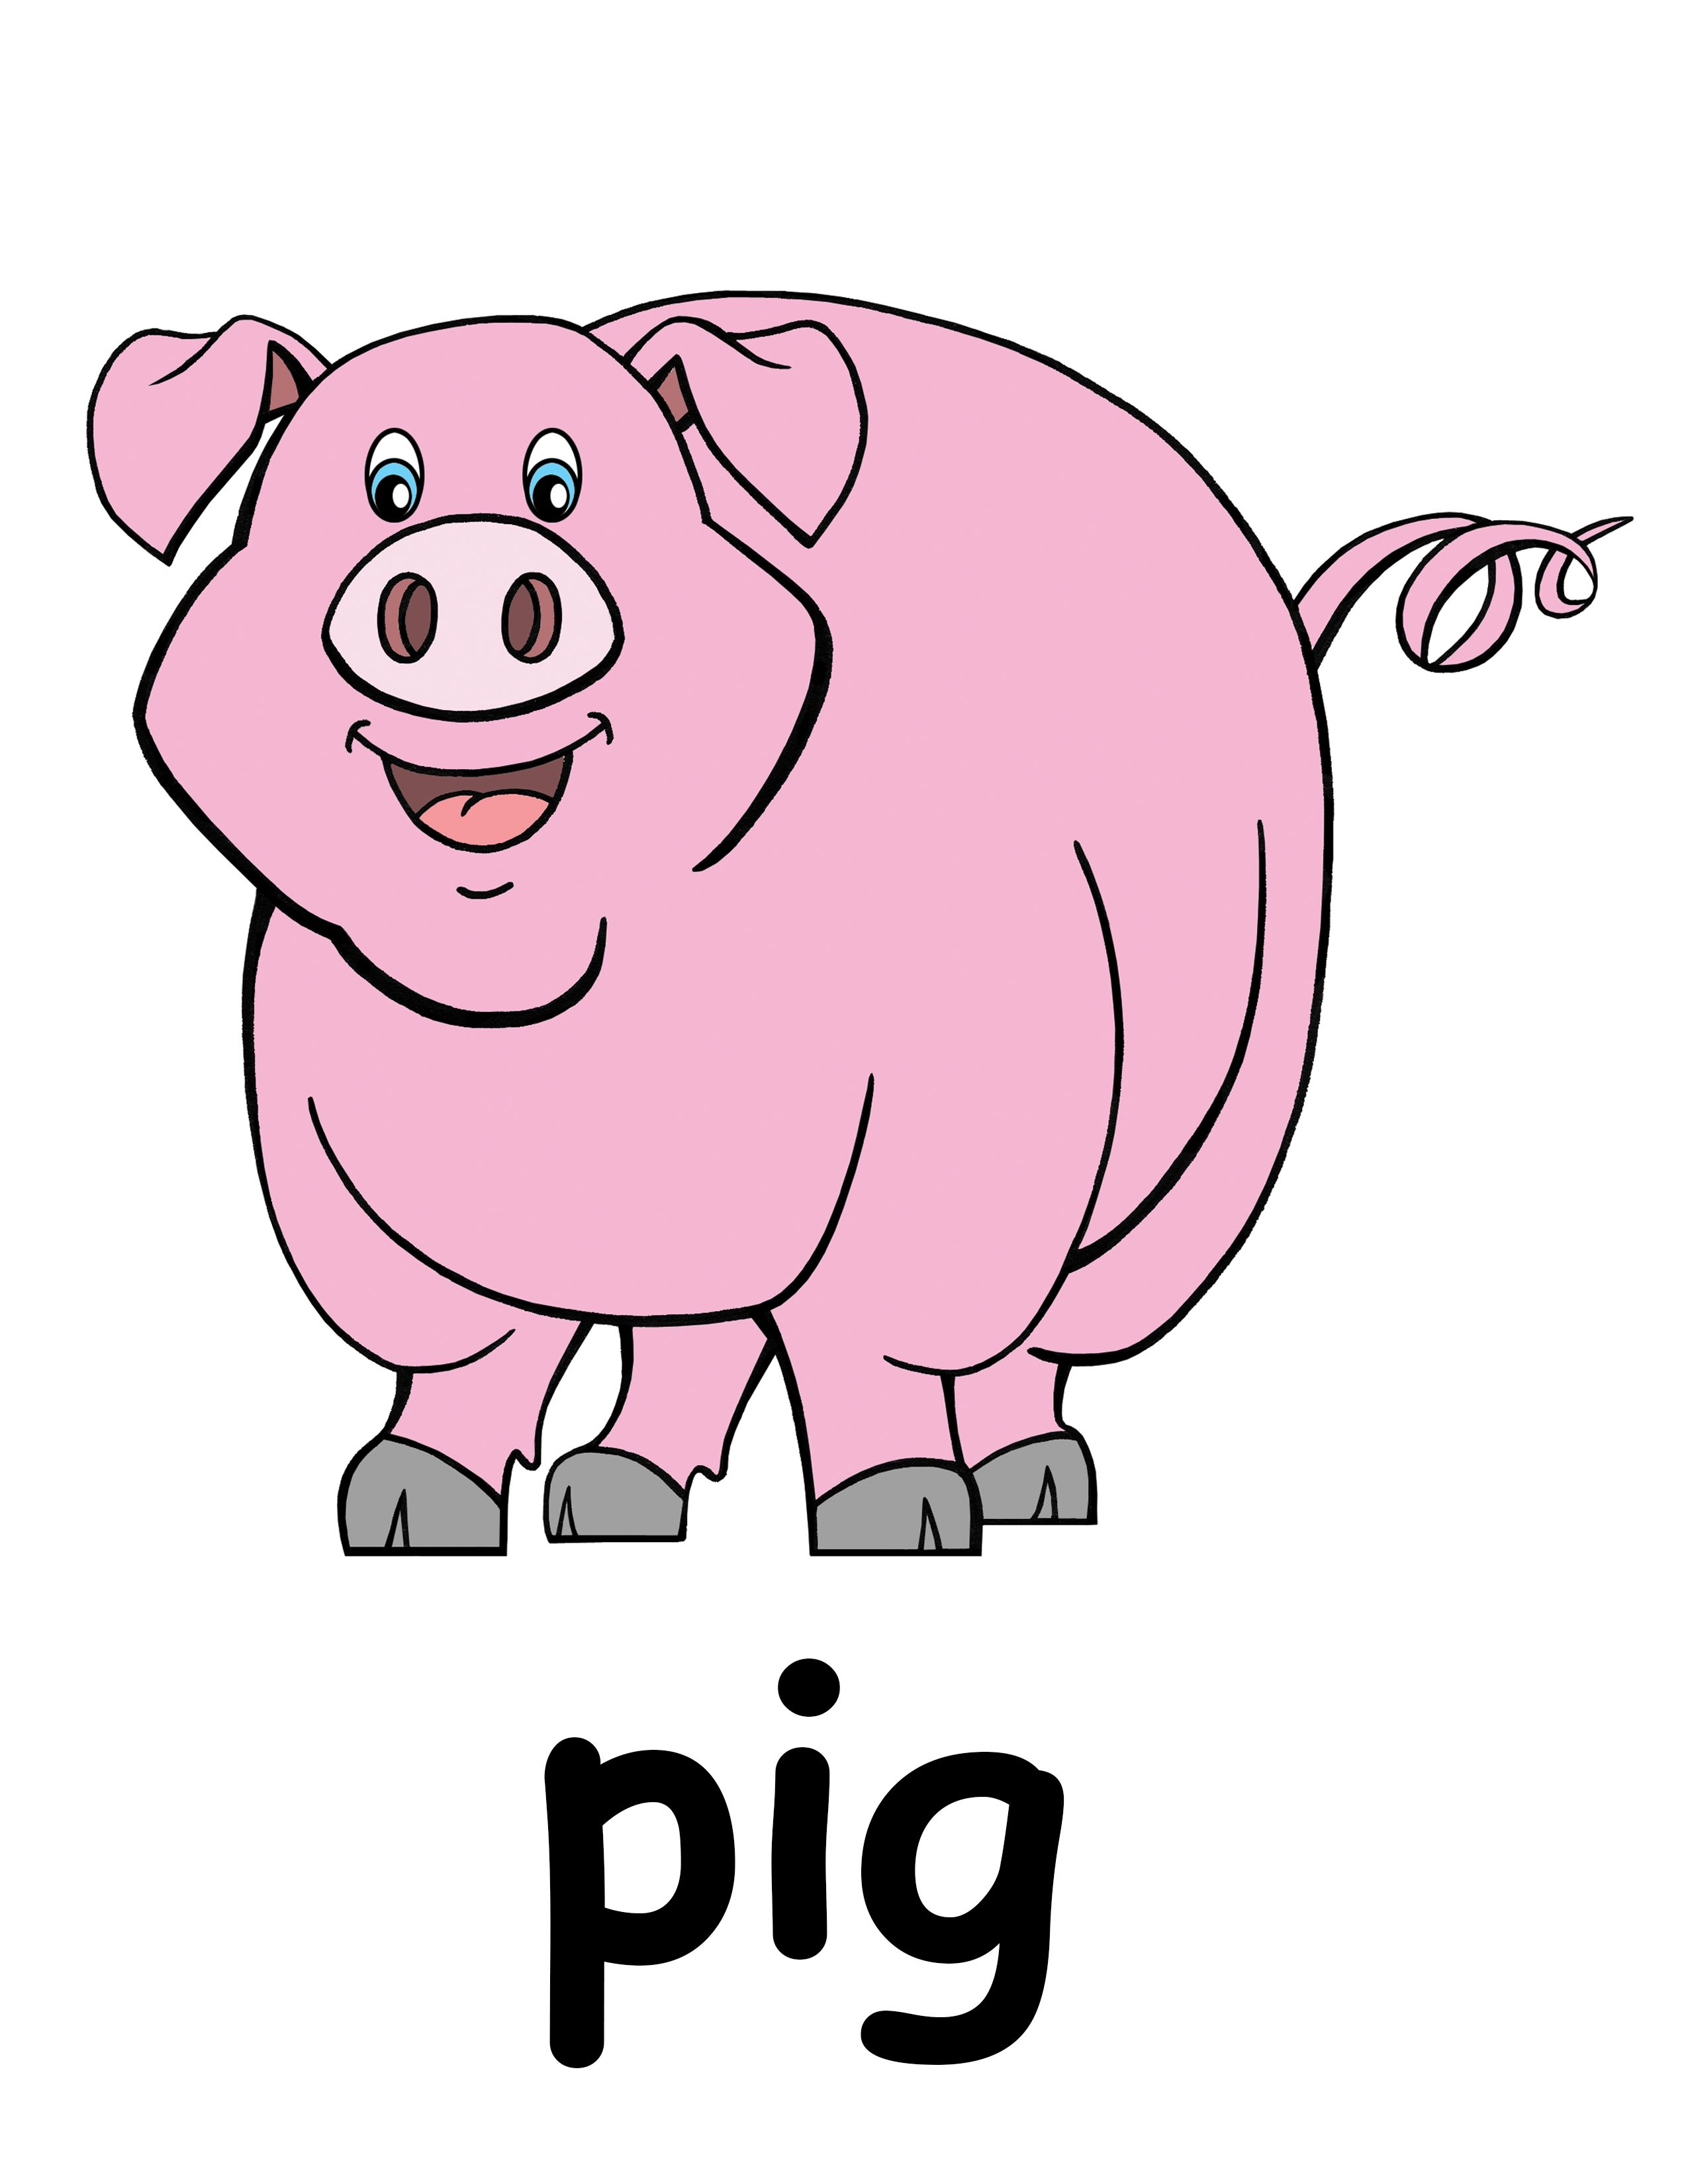 pig in mud cartoon farm clipart free clip art image image [ 2550 x 3300 Pixel ]